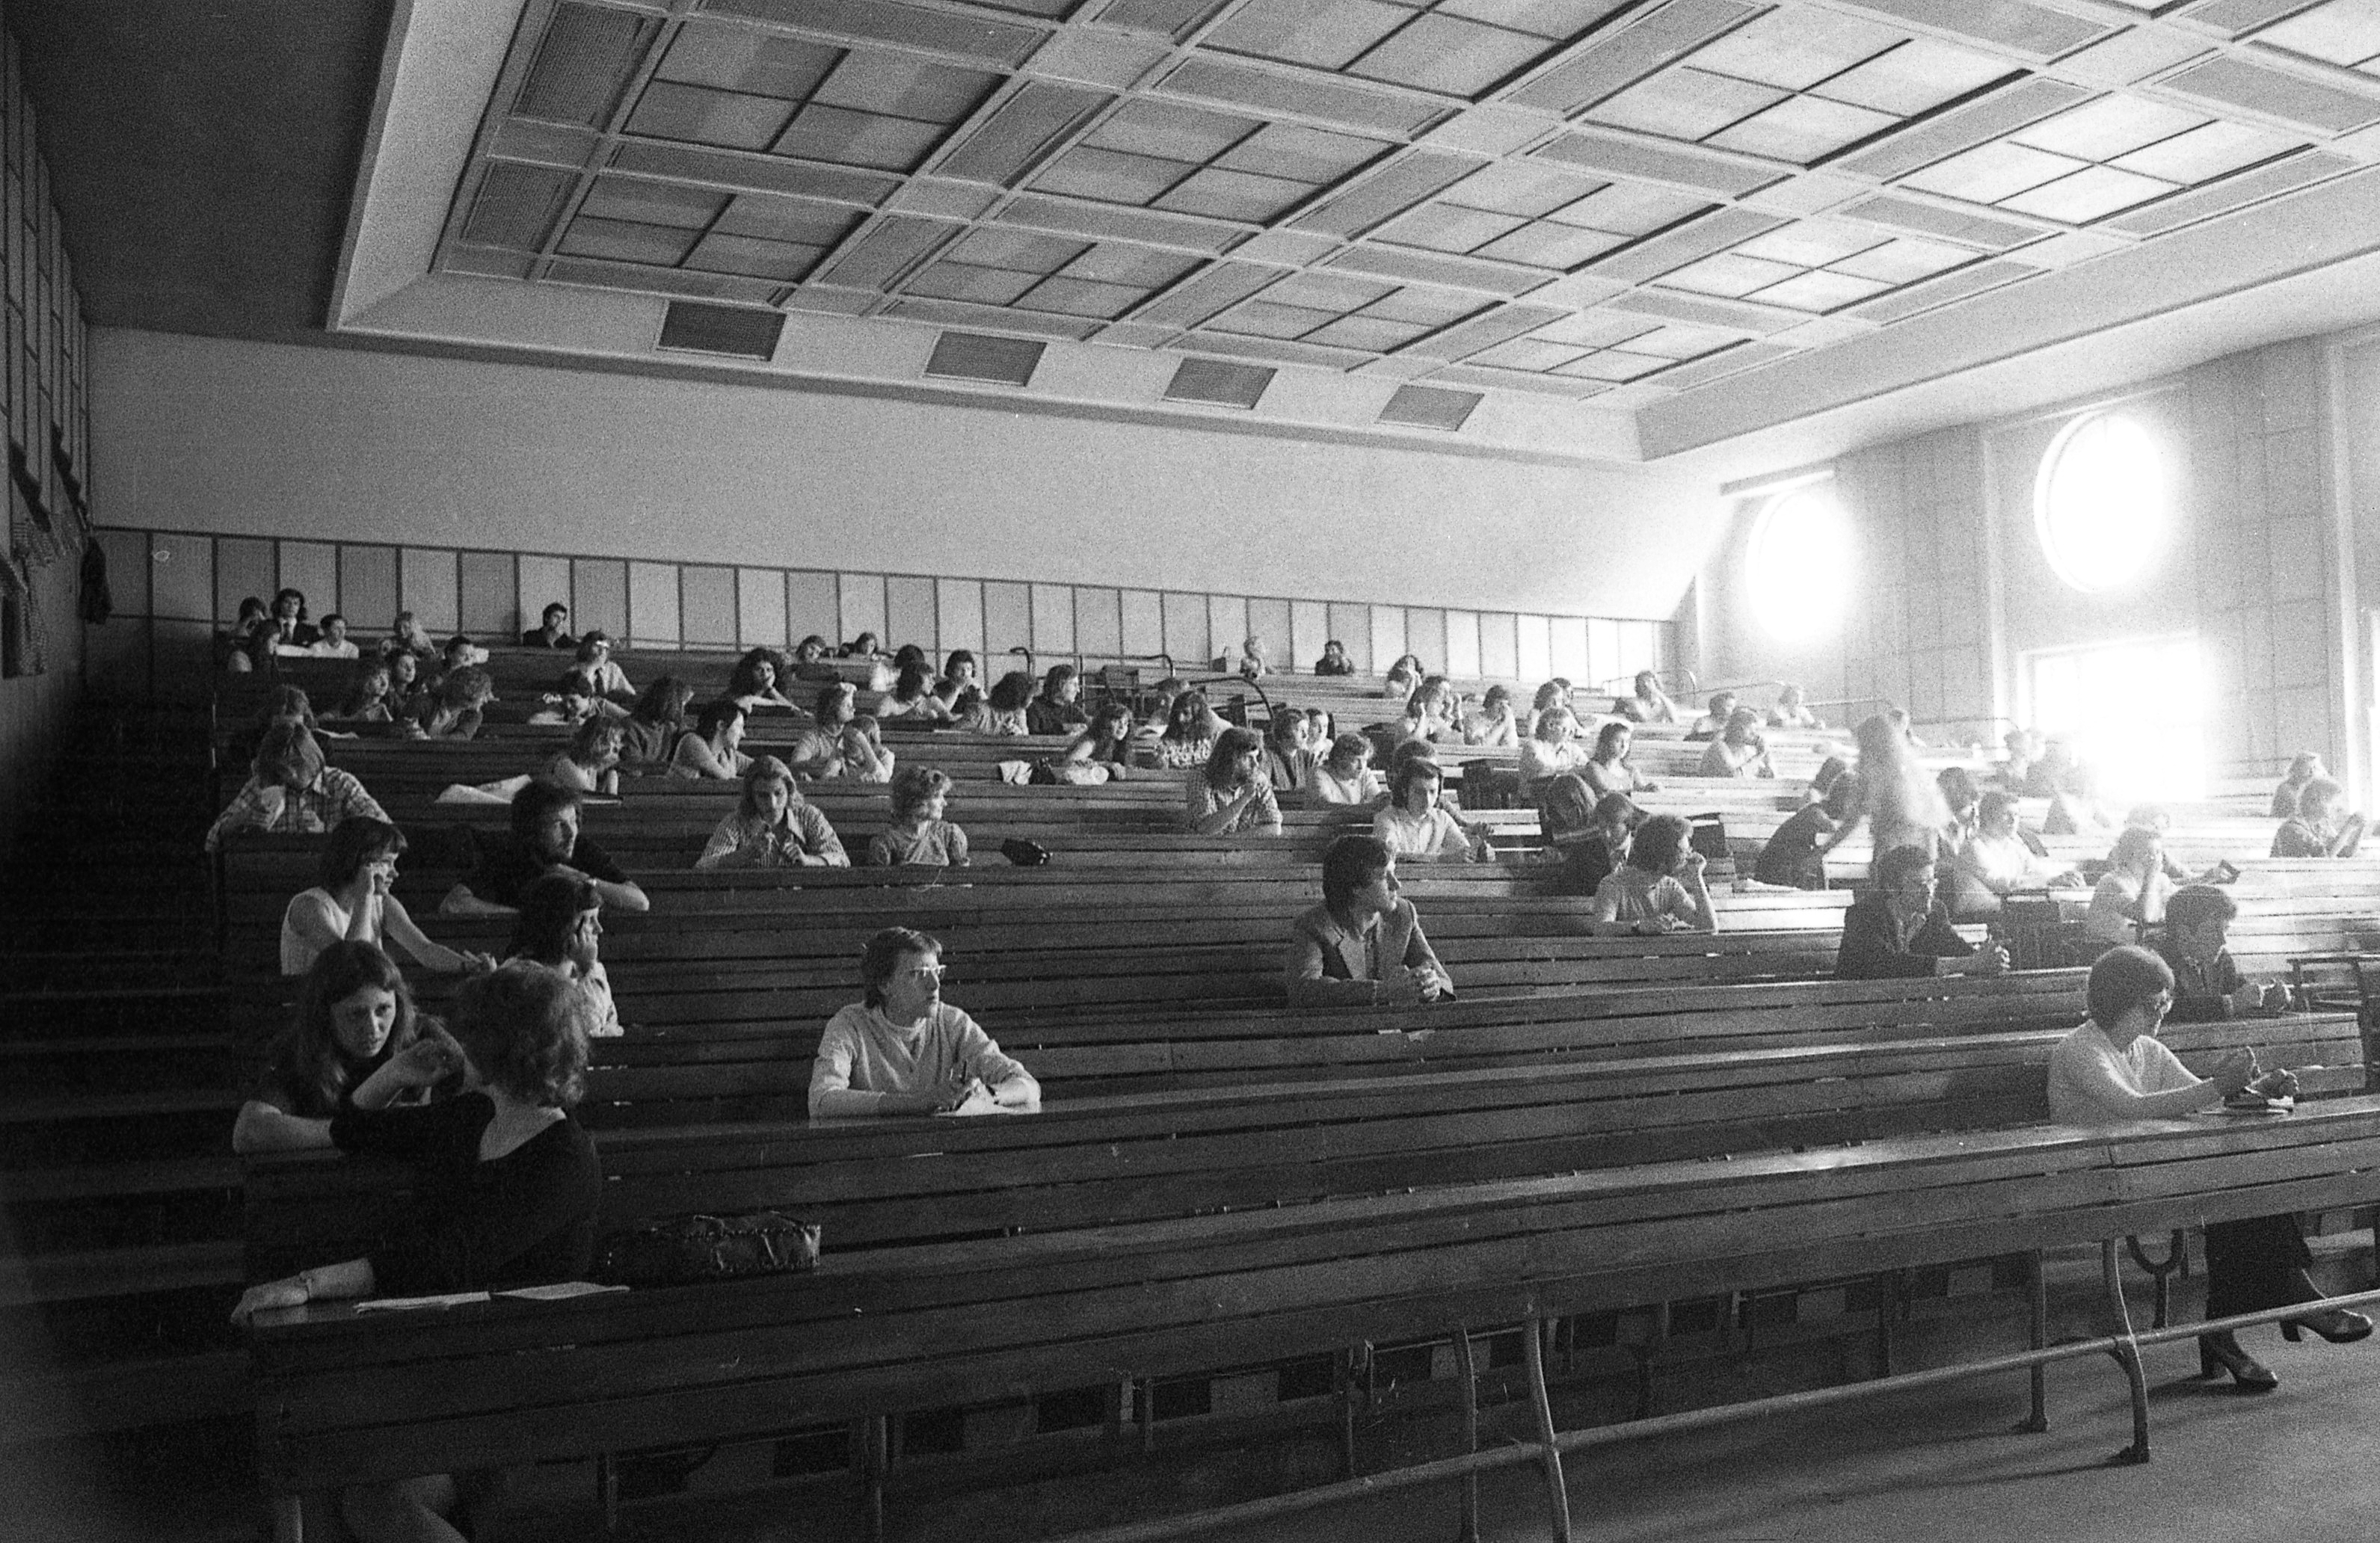 Auditorium in the Eötvös Loránd University of Sciences, 1974.